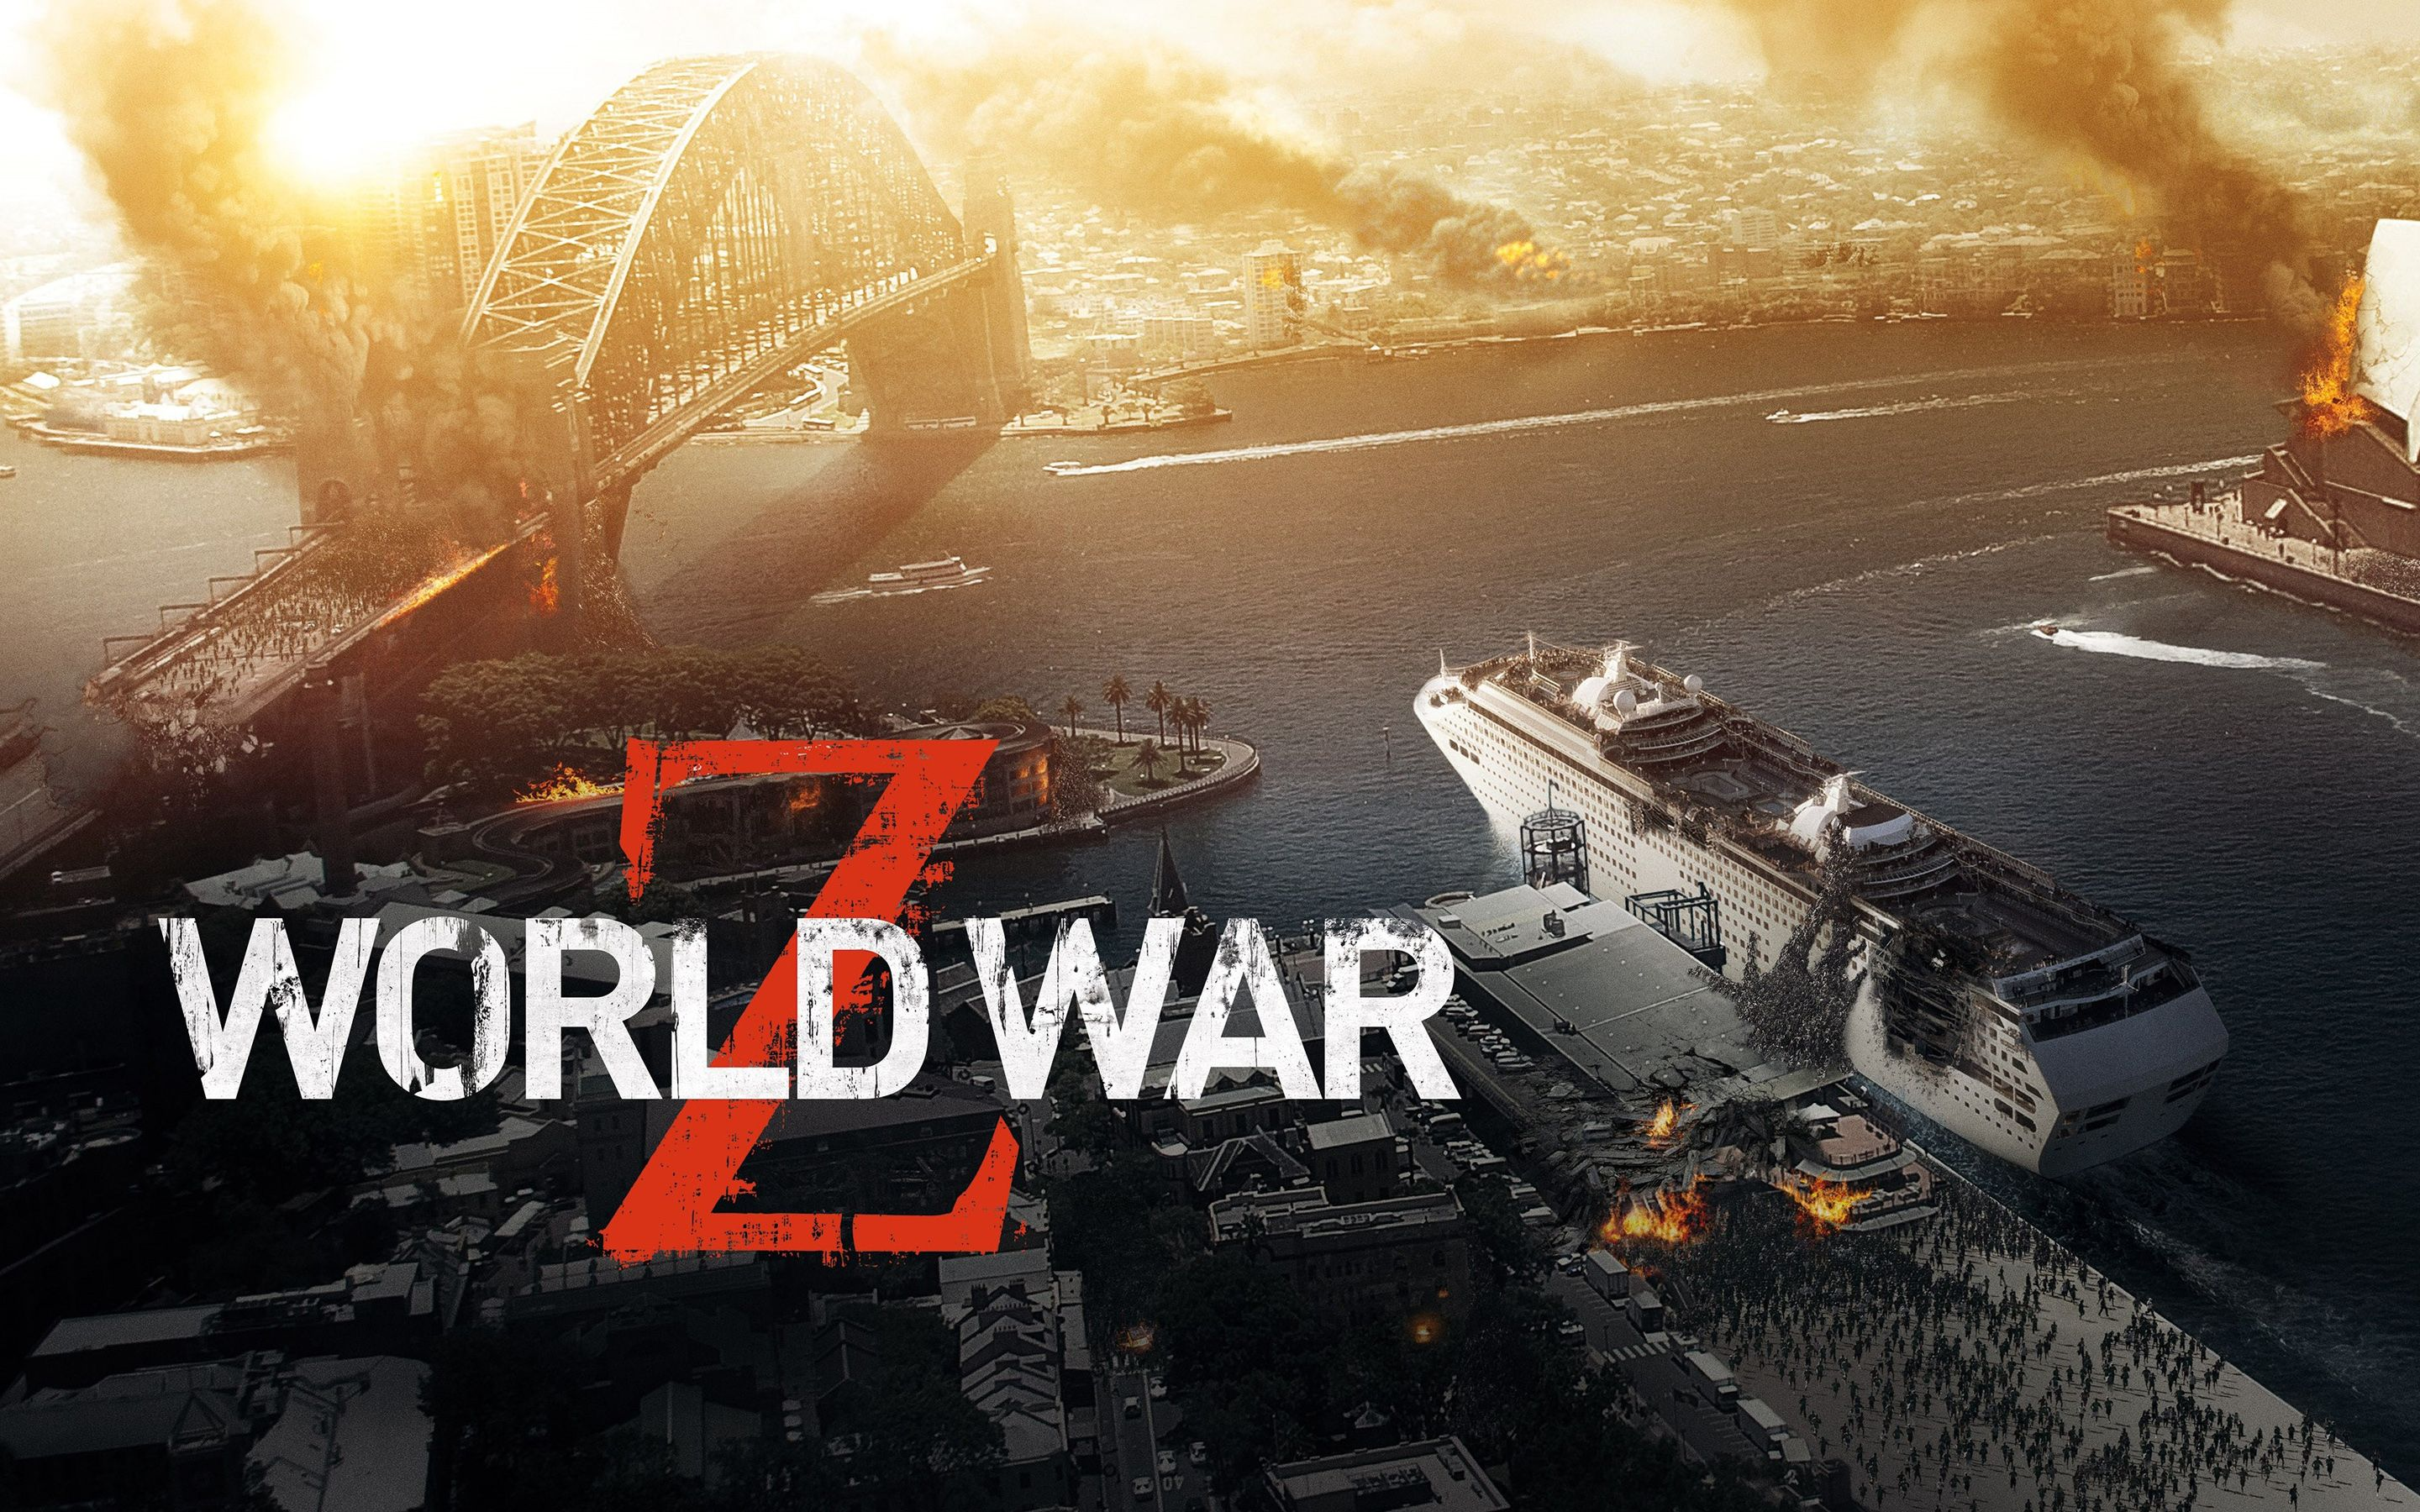 watch world war z online free 123